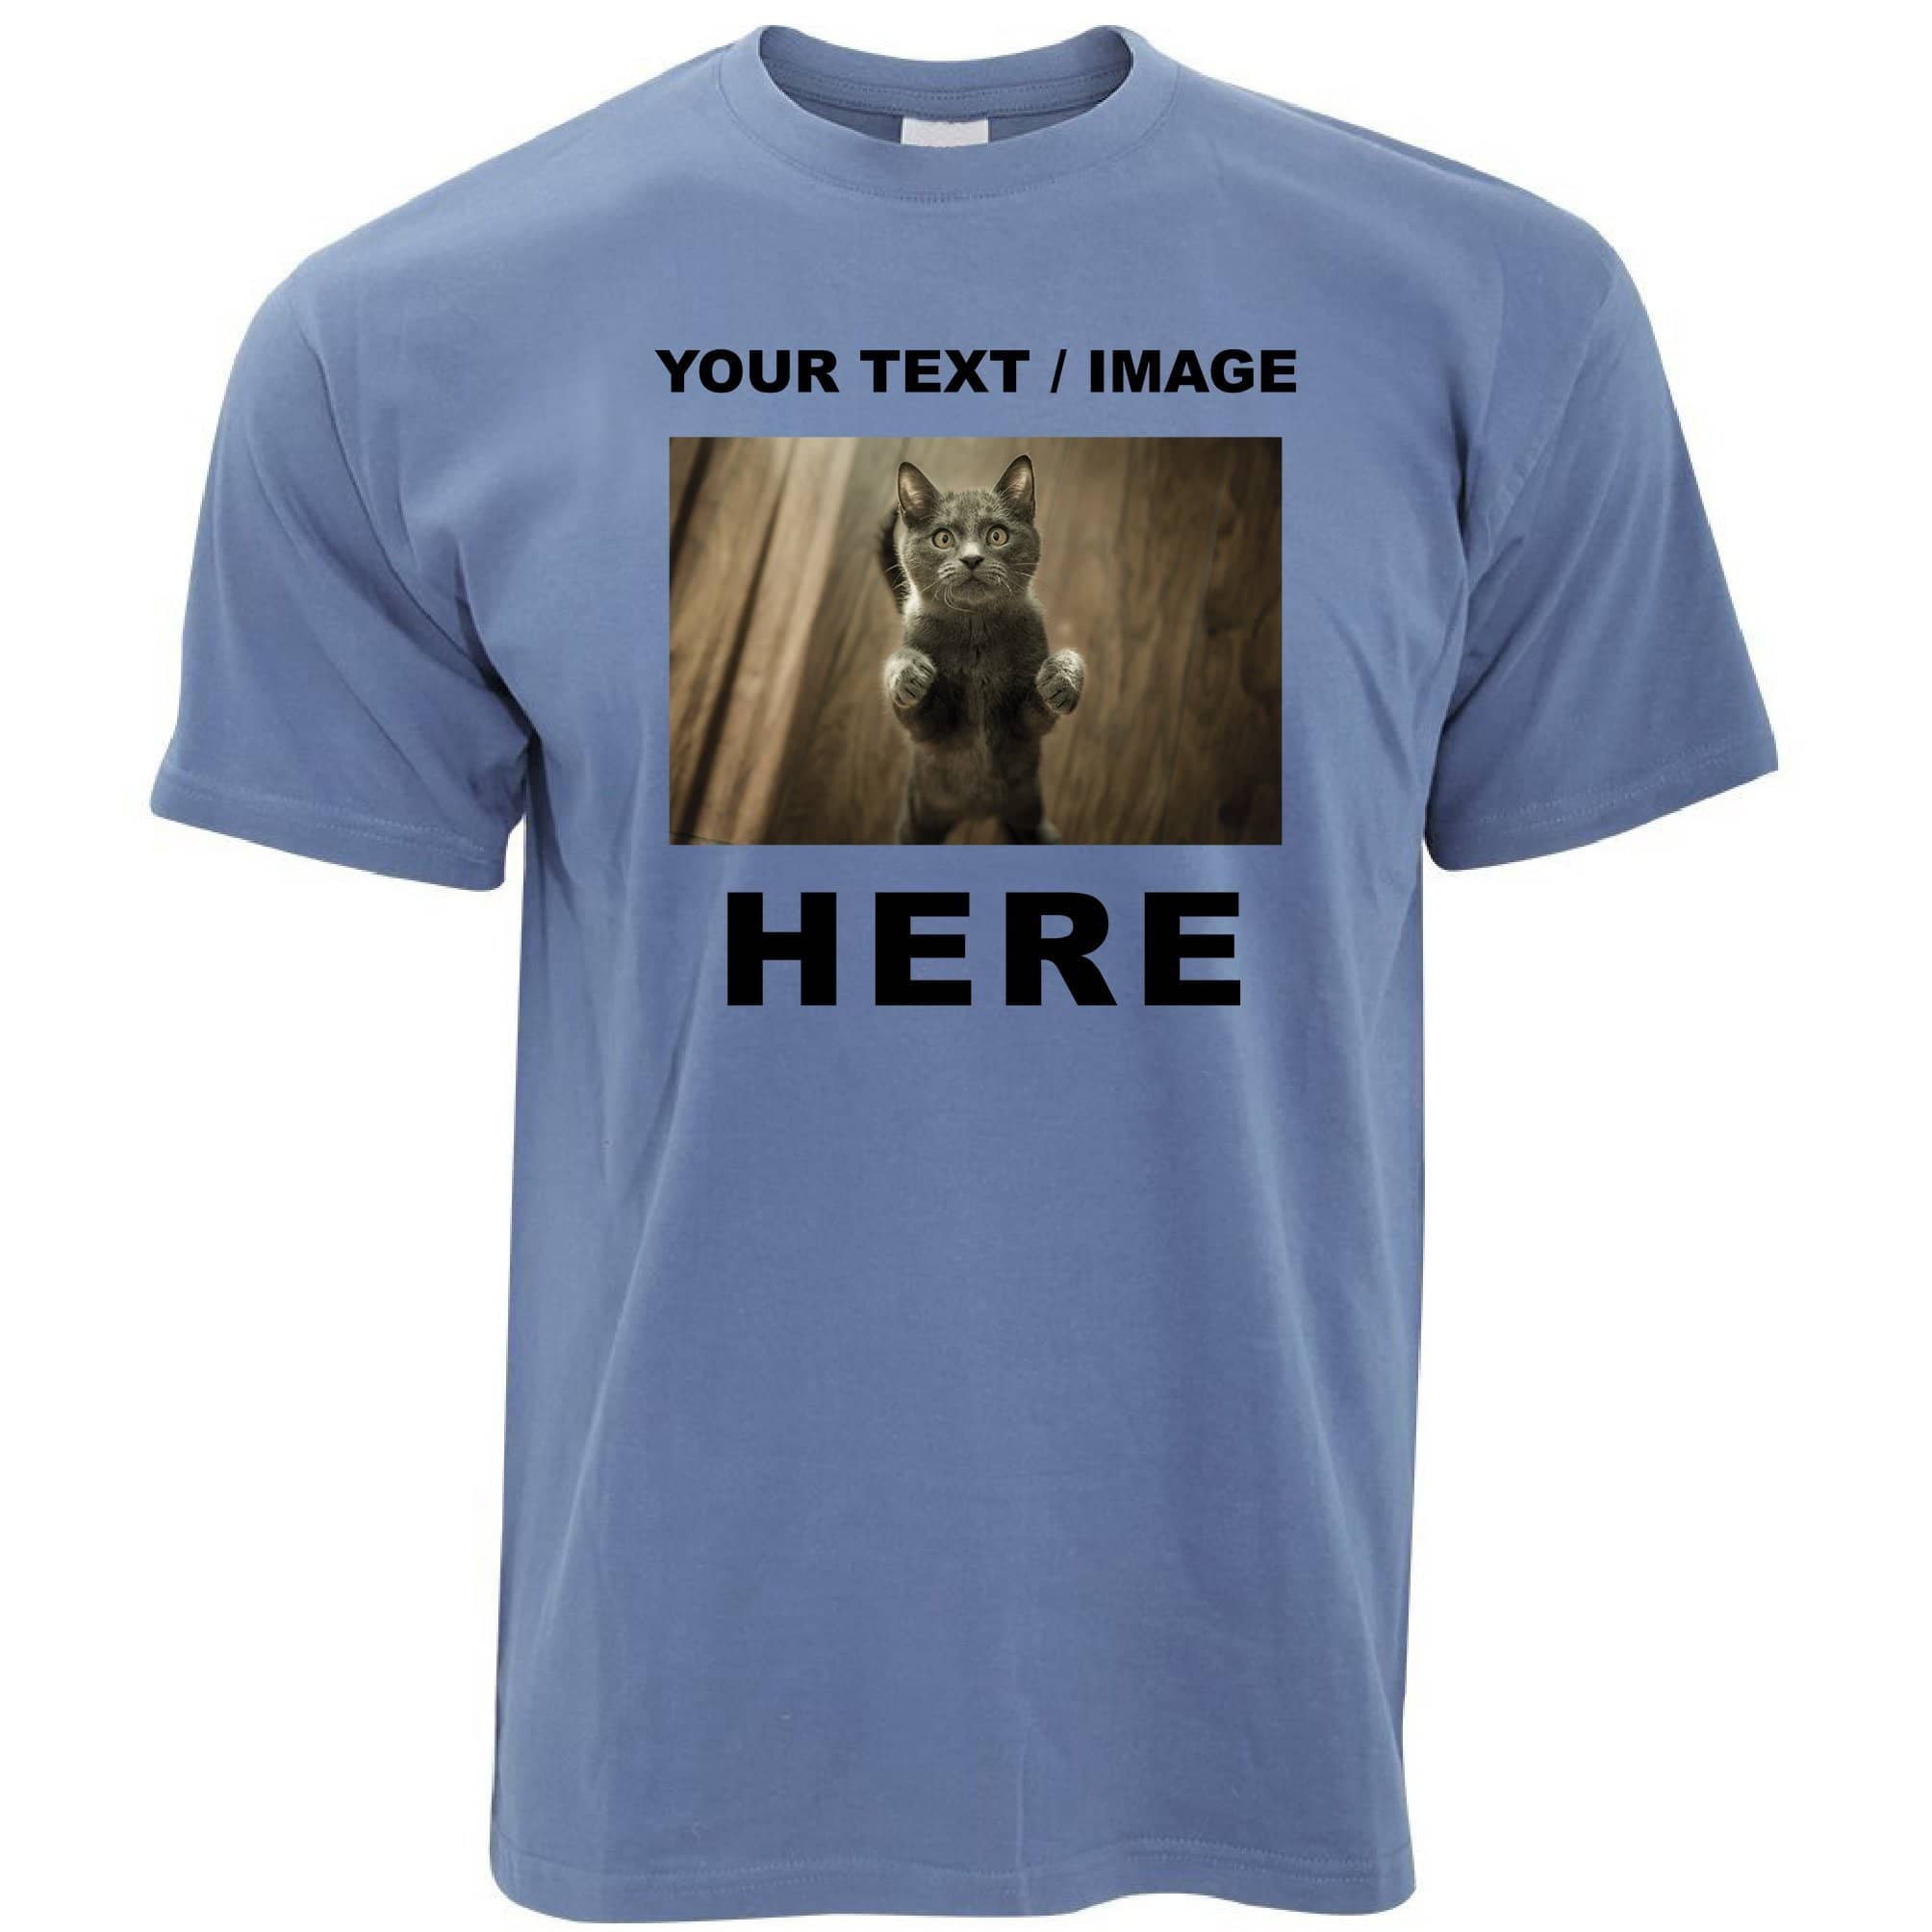 Custom Printed T Shirt with Your Text or Image